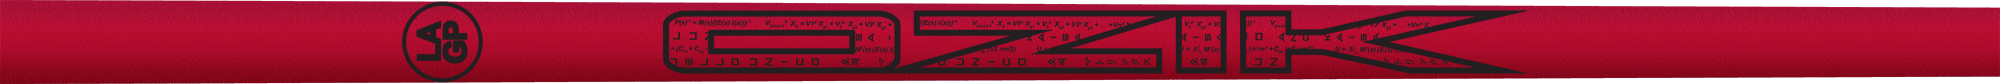 Ozik White Tie: Candy Apple Red Black Textured - Wood 50 A